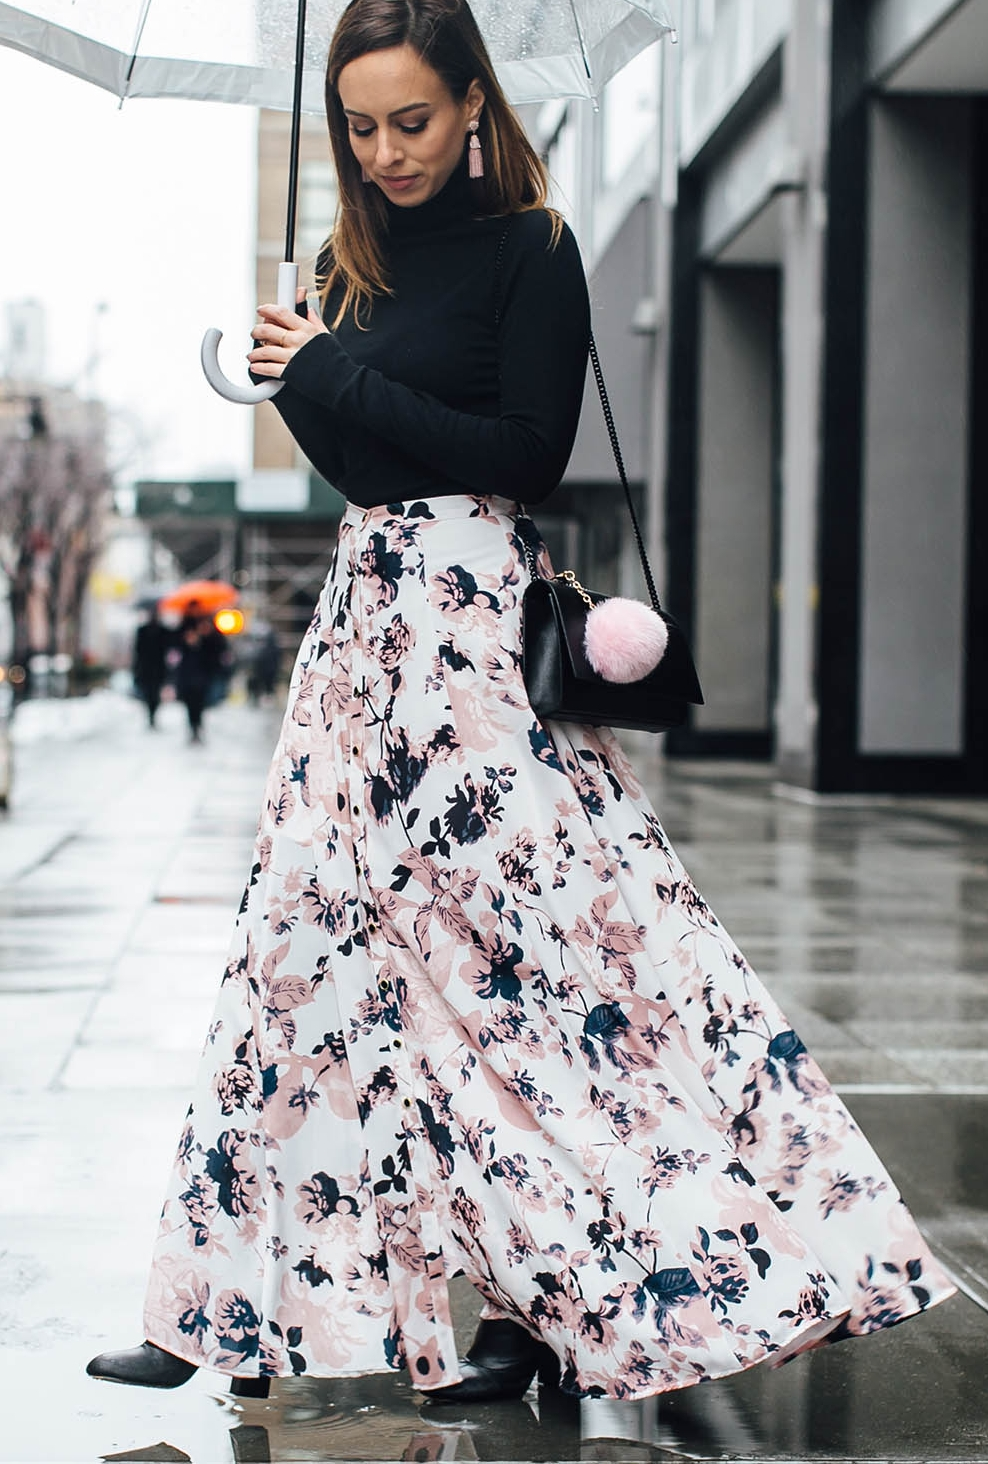 Sydne-Style-wears-Yumi-Kim-floral-print-maxi-skirt-with-black-turtleneck-for-fashion-week-street-style.jpg